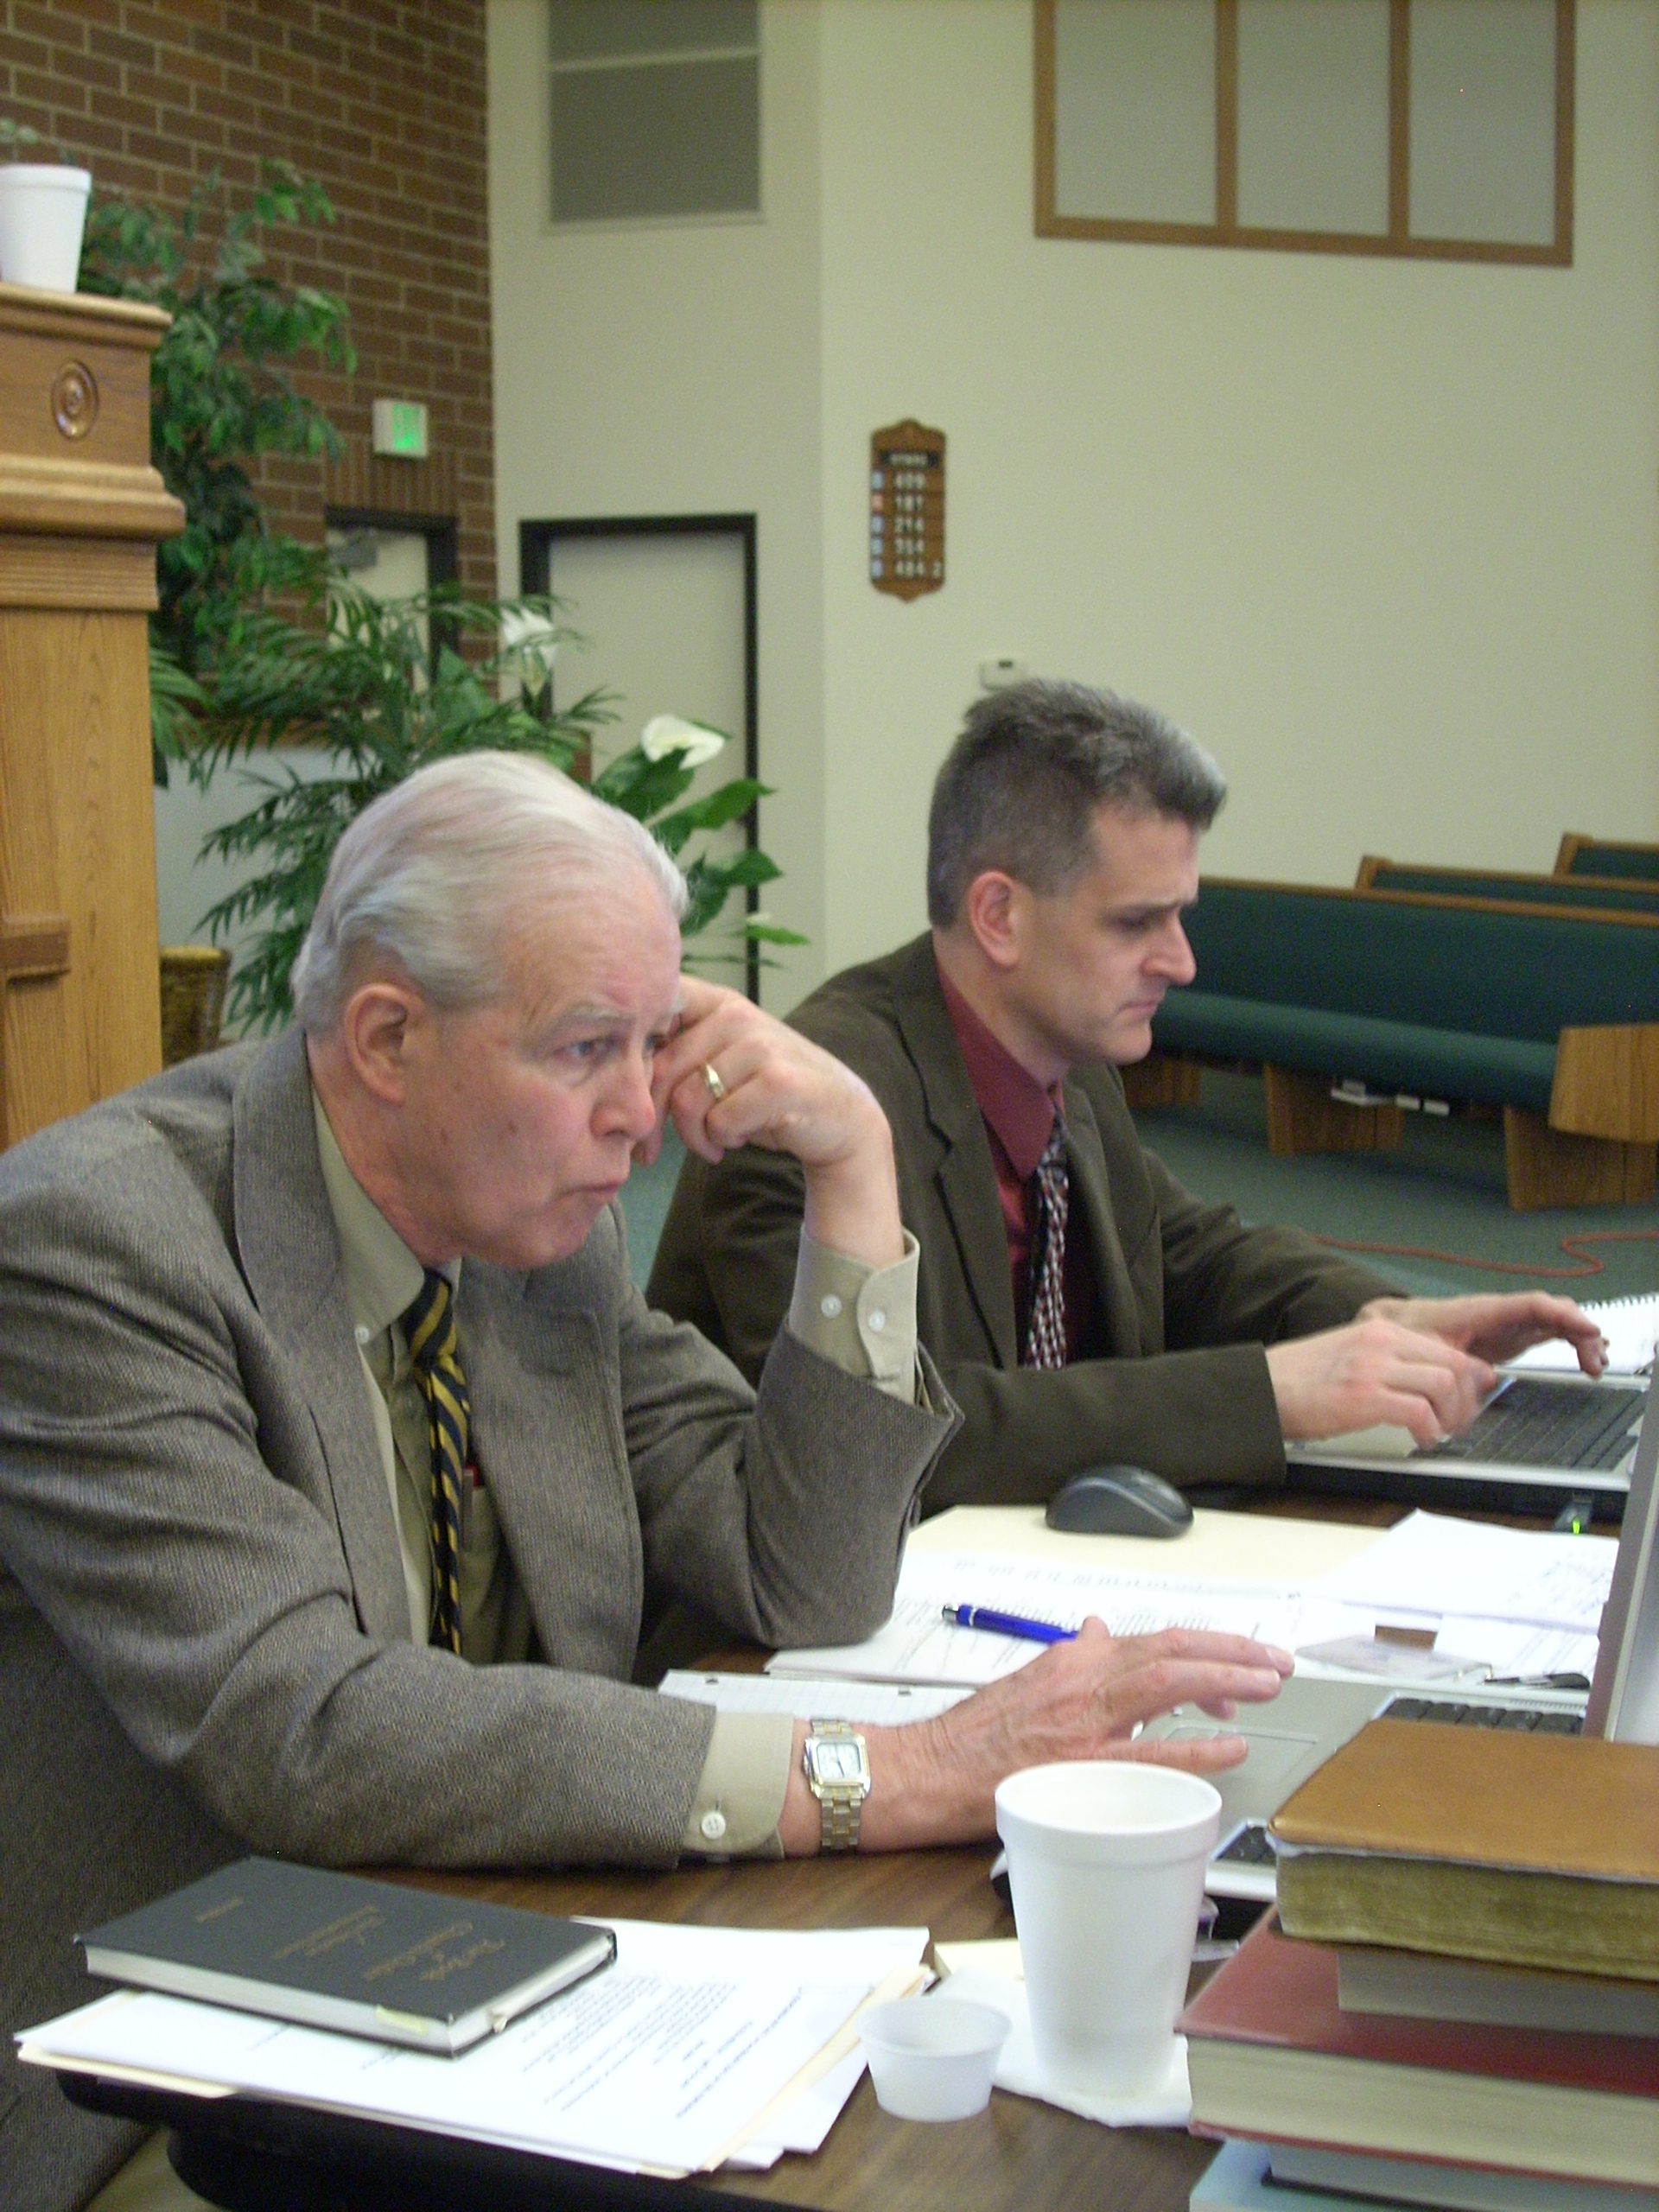 PNW_2010-04 033.jpg - The Stated Clerk, Donald Poundstone, and Assistant Clerk, Rob Van Kooten, hard at work . . .